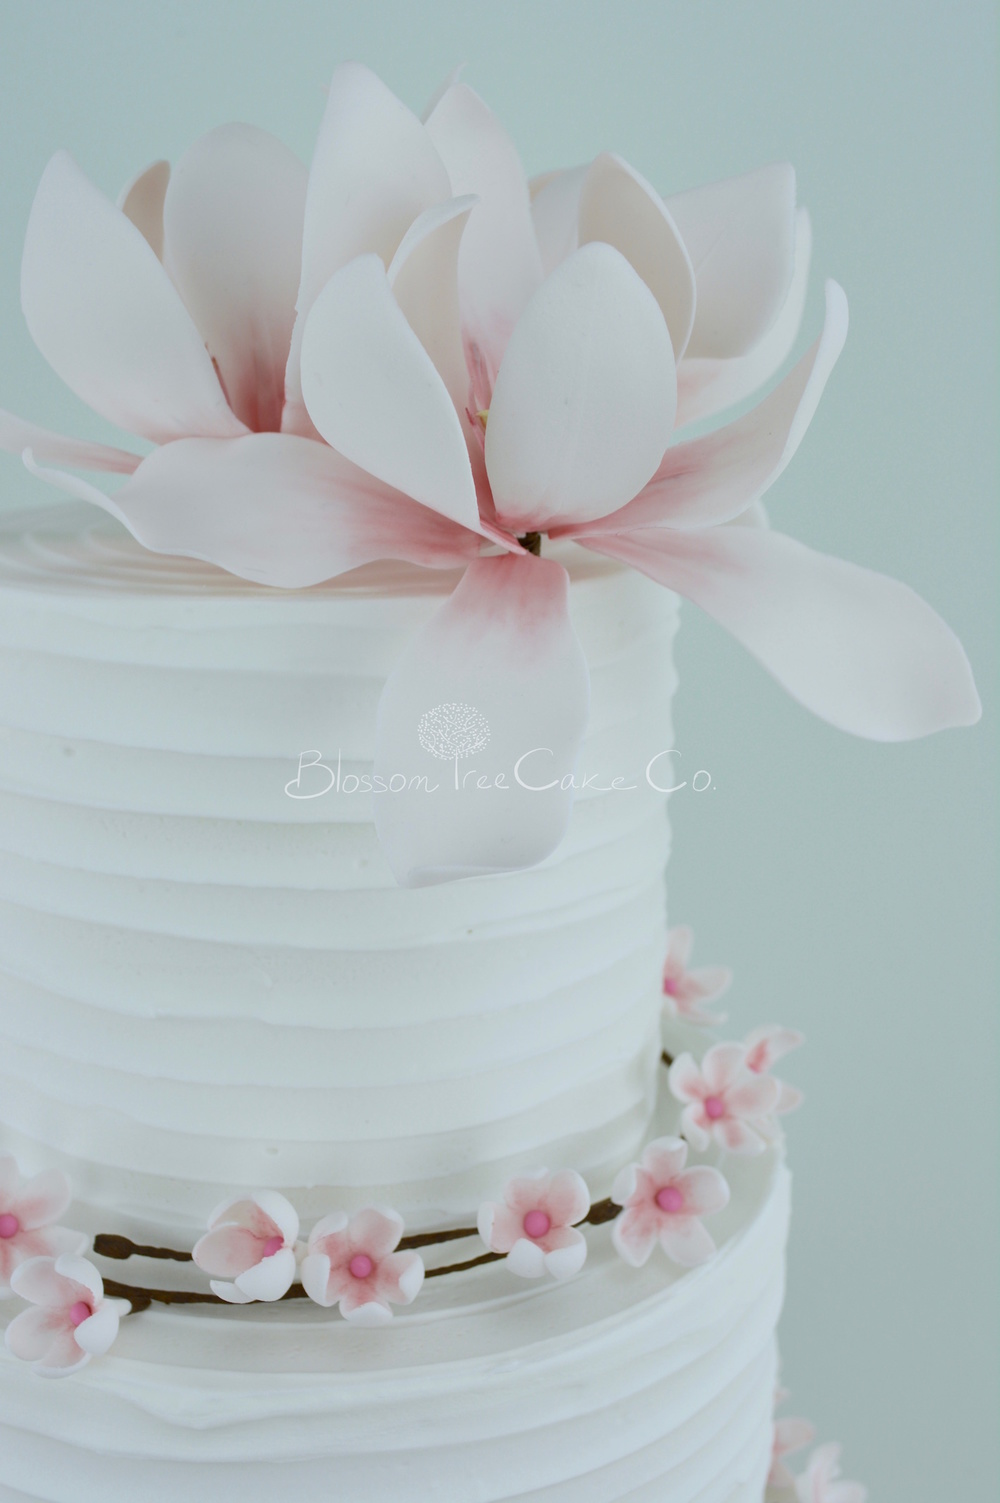 Cherry Blossom & Magnolias wedding cake by Blossom Tree Cake Company Harrogate North Yorkshire flower detail 1